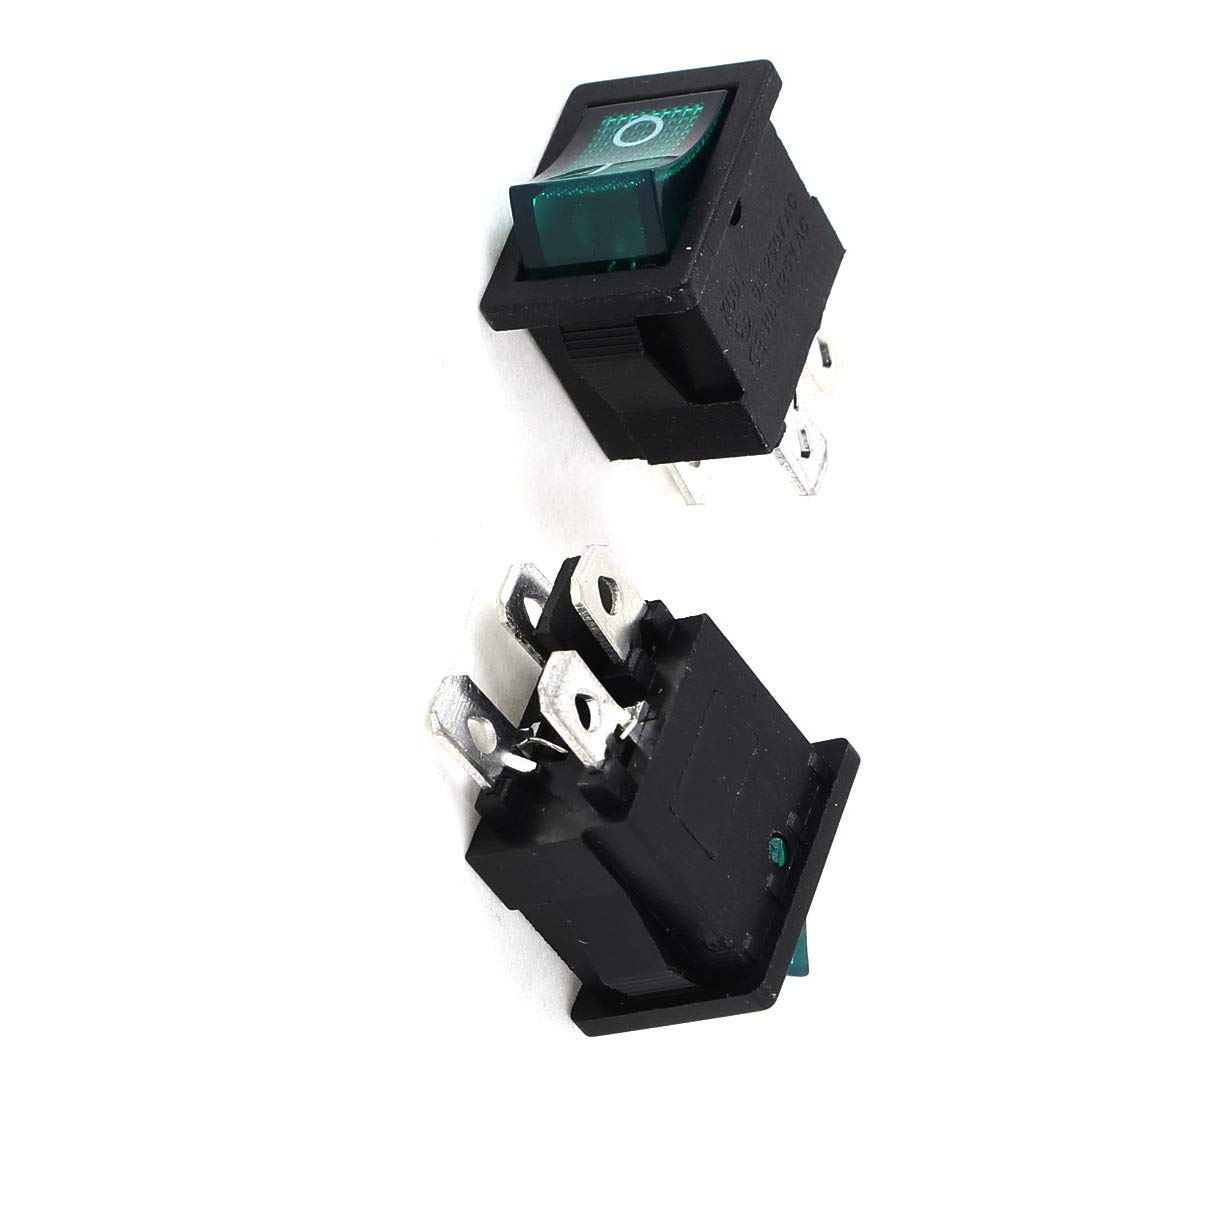 Aexit 5 Pcs Wall Switches Black Round AC 250V 6A 2 Pin ON-Off SPST Snap in Dimmer Switches Rocker Switch